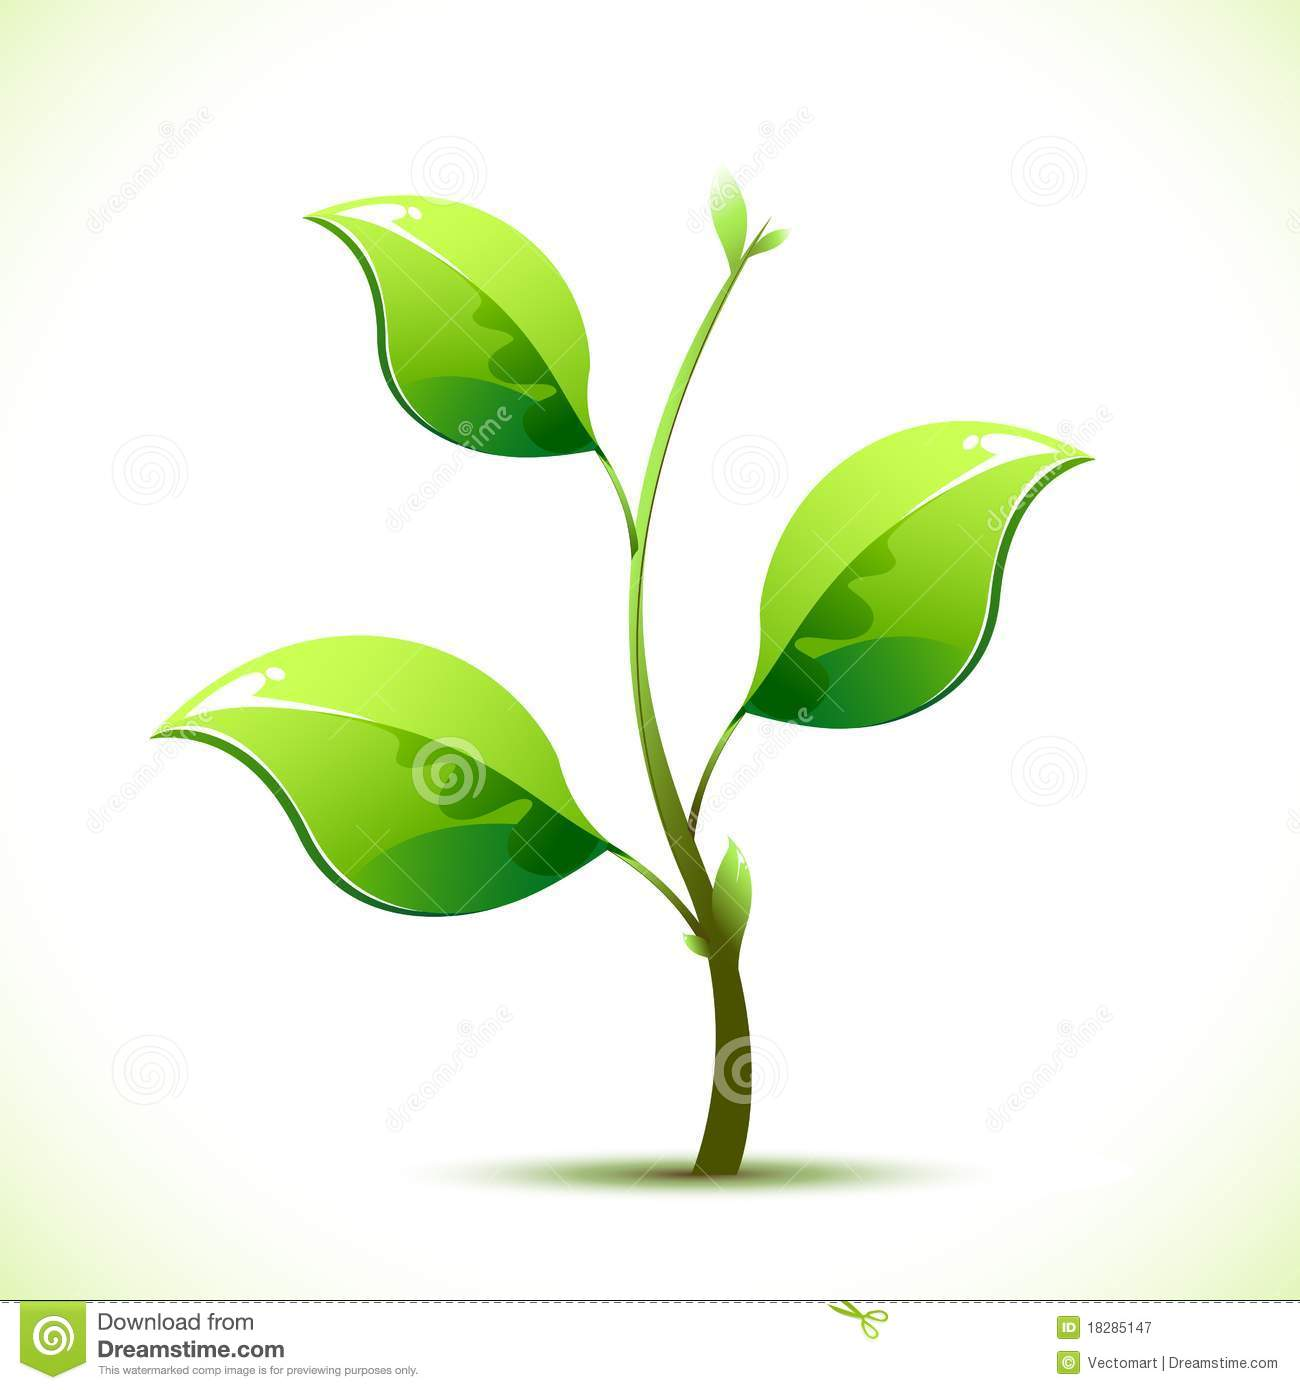 Illustration of plant sapling growing on abstract background.